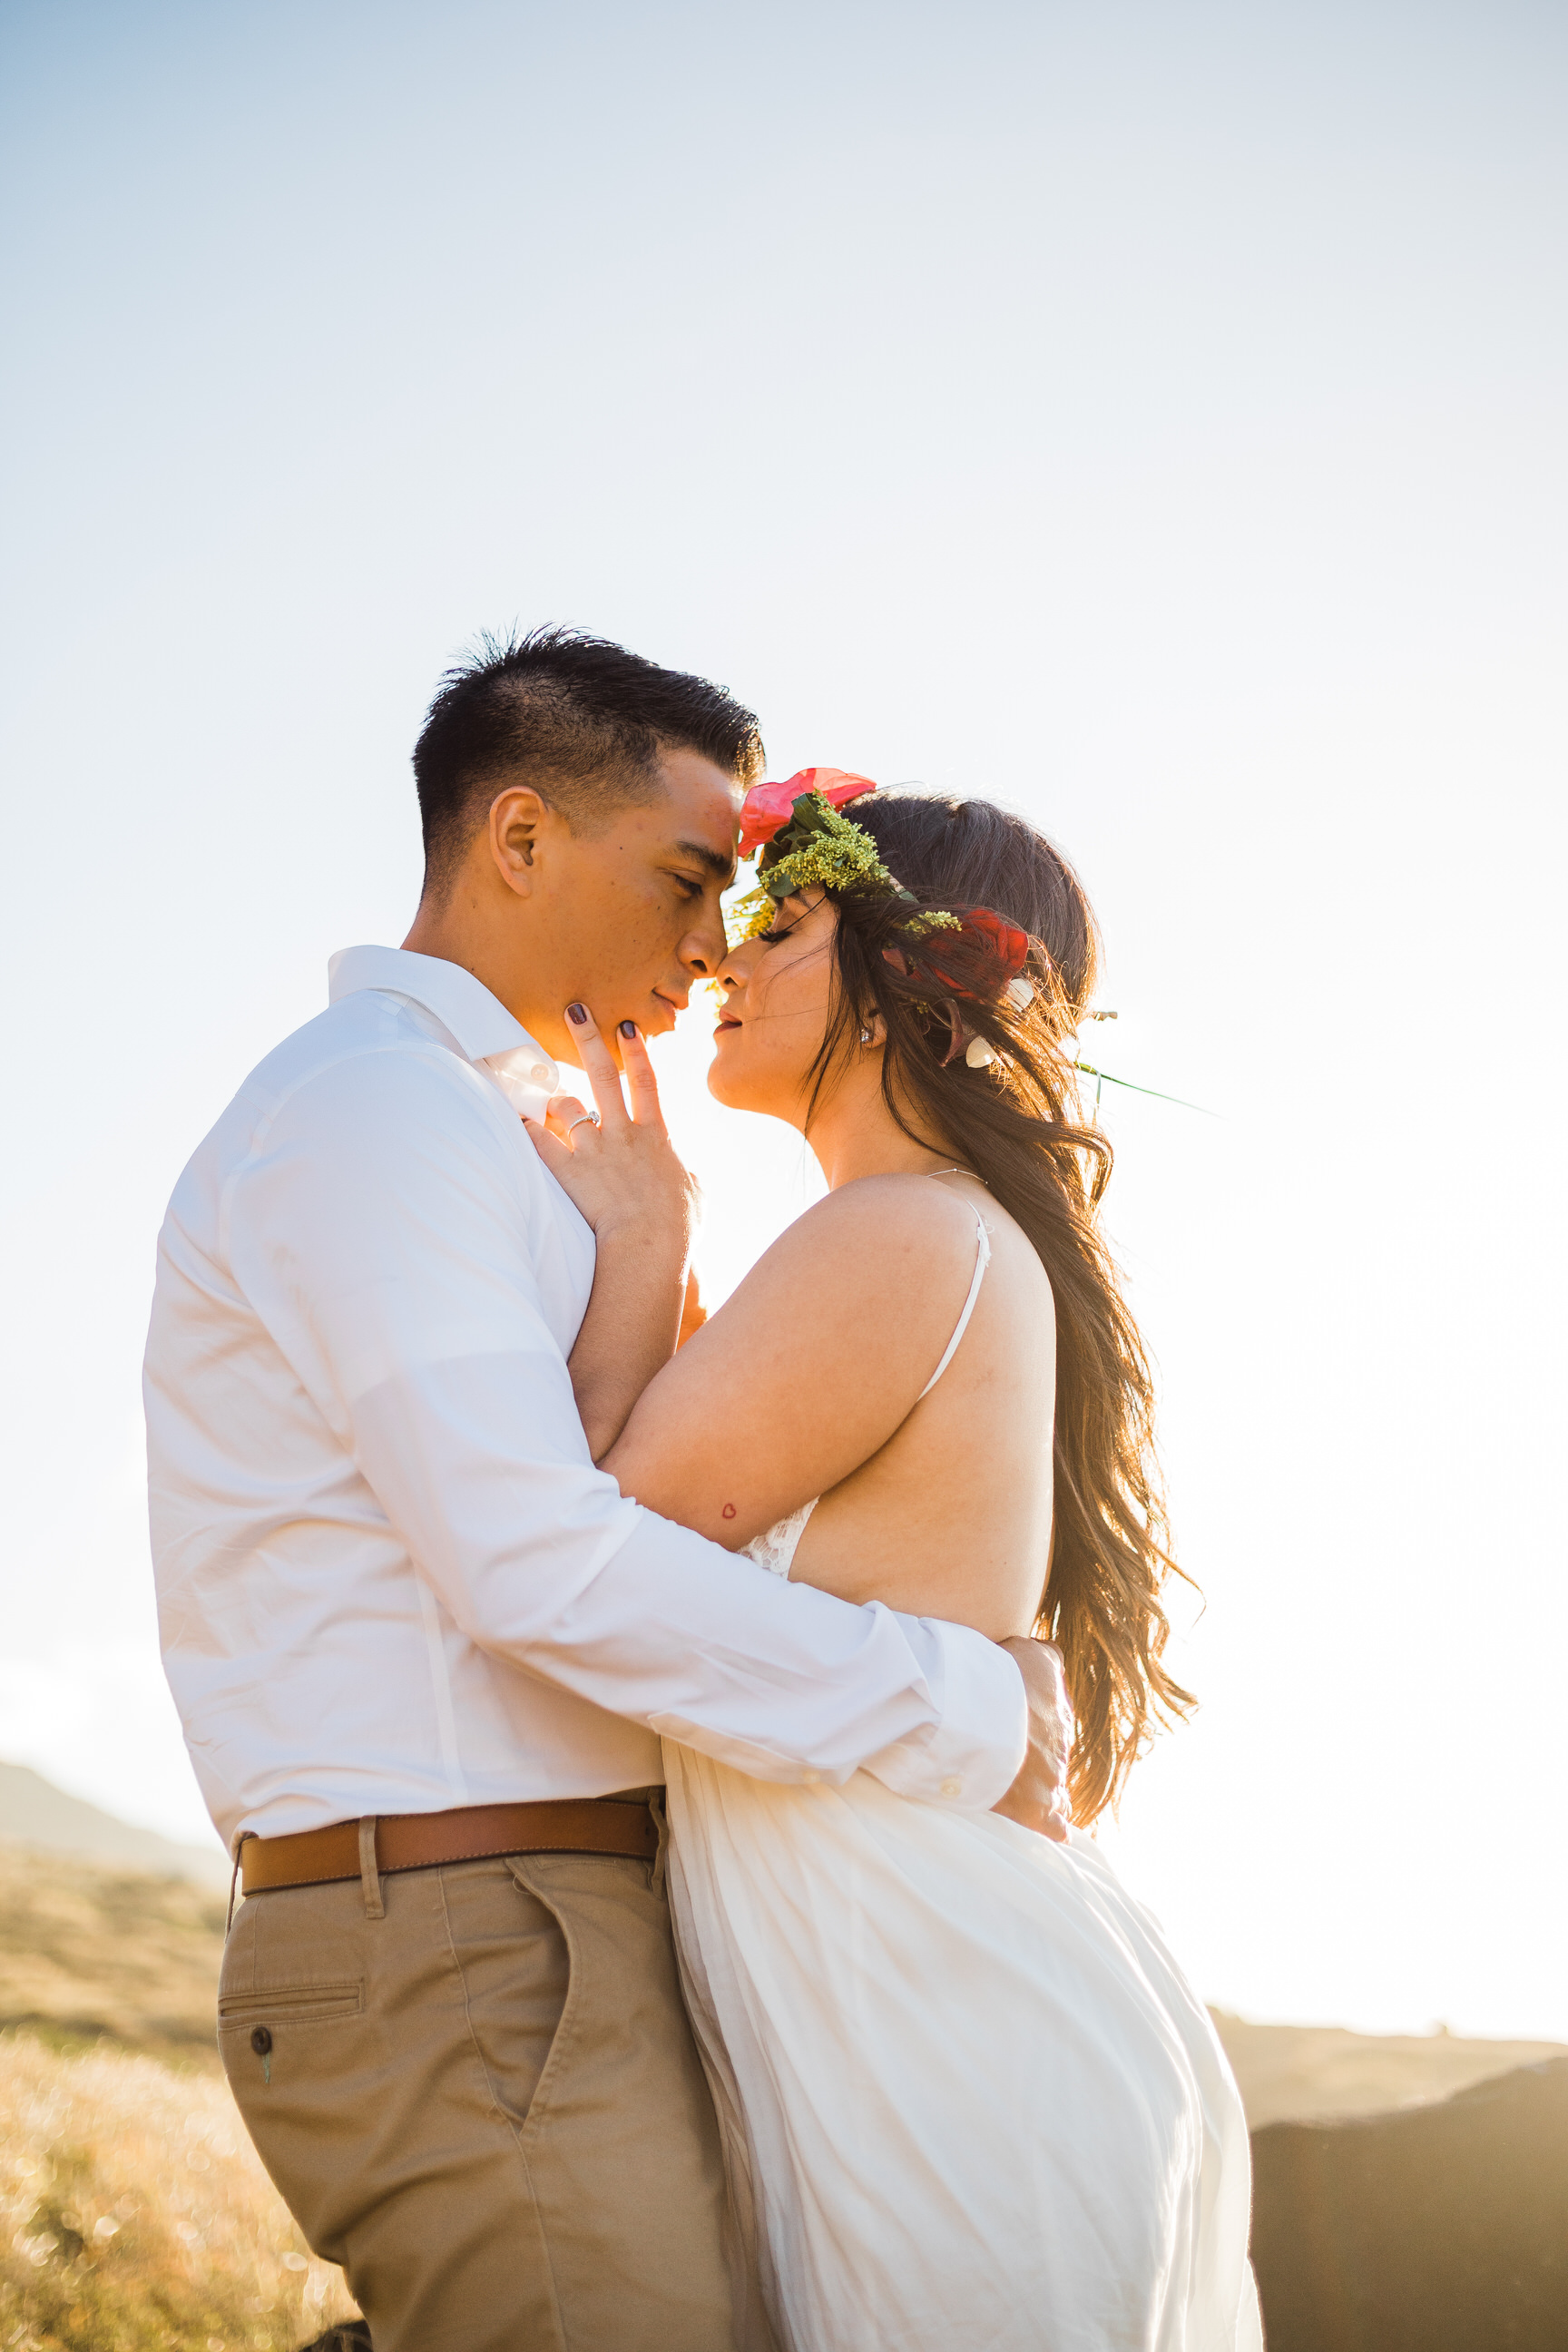 intimate-elopement-sunset-oahu-haku-6.jpg